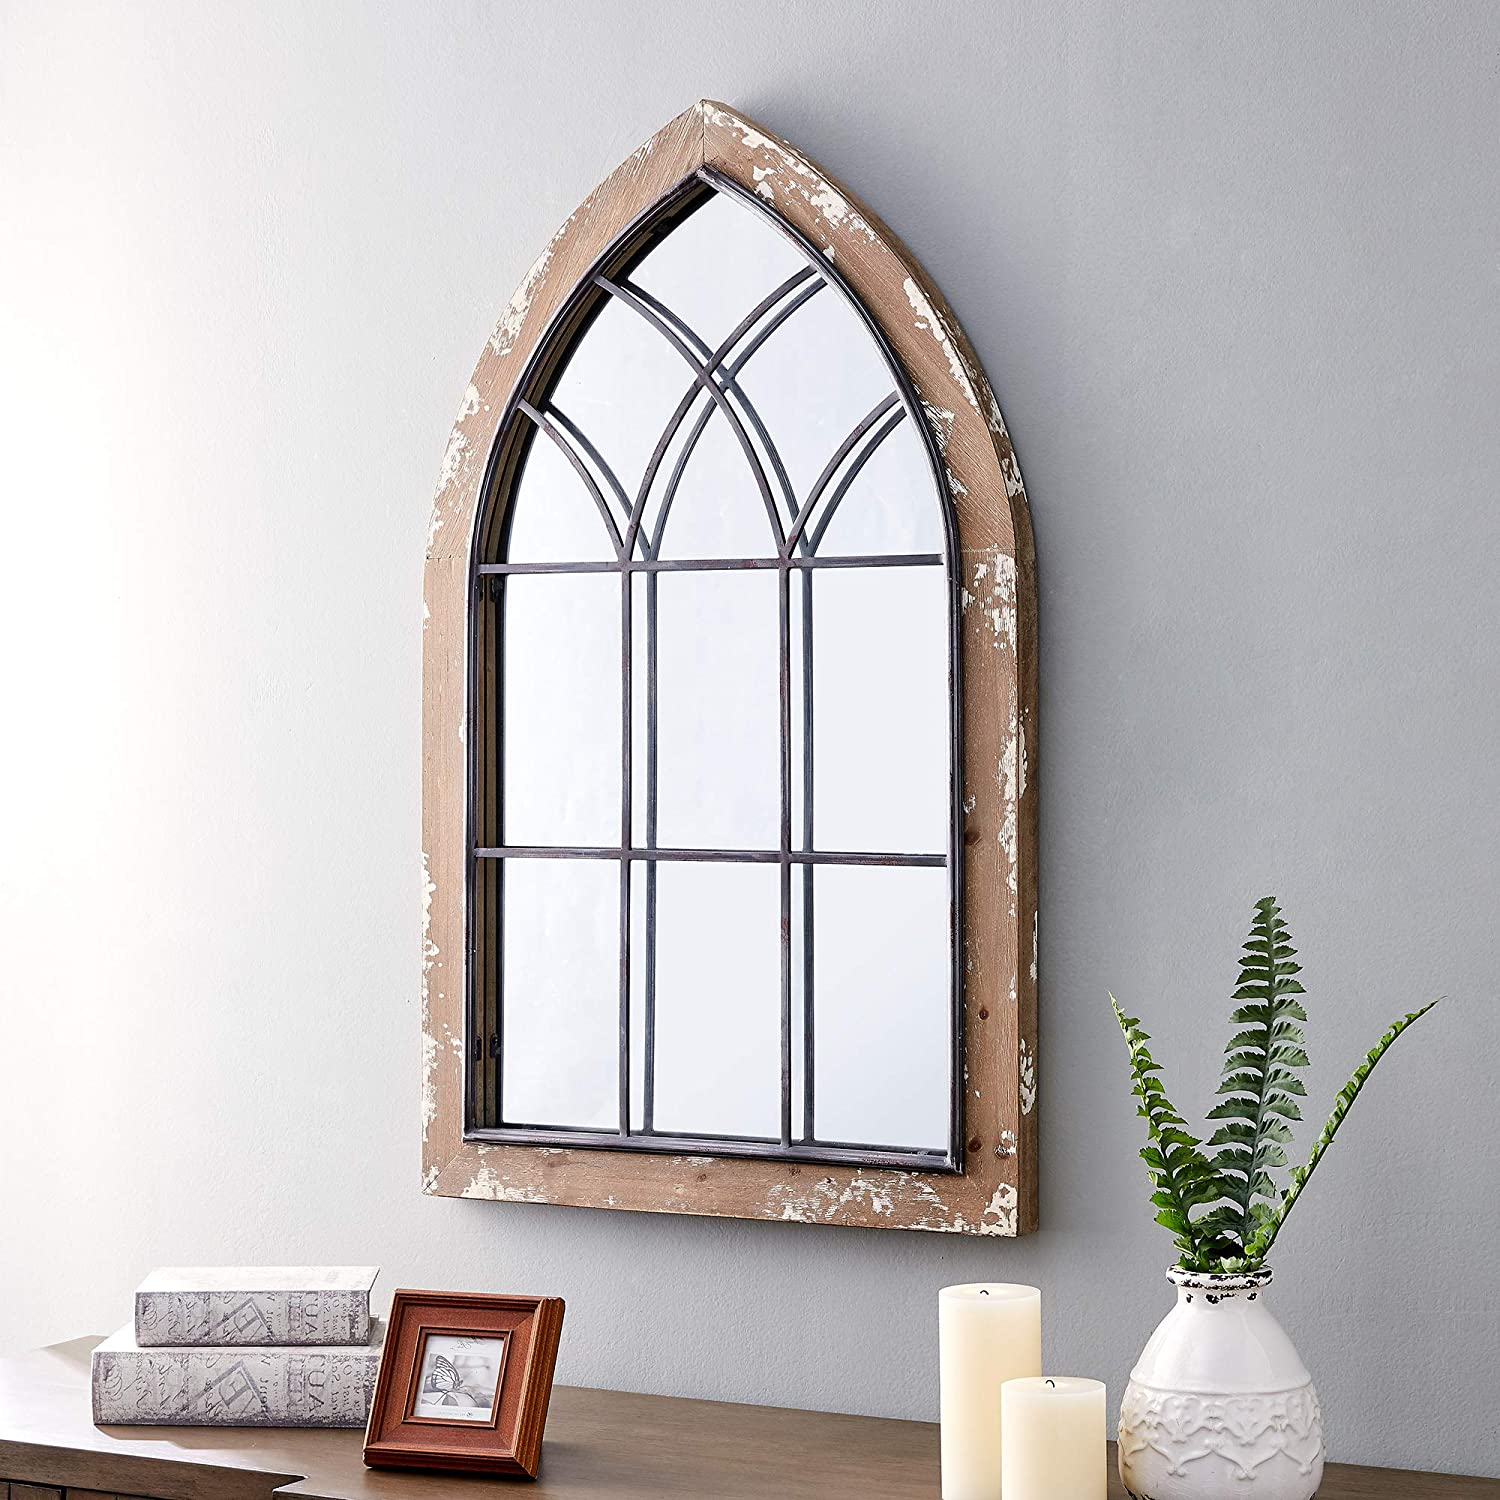 FirsTime & Co. Glen View Gothic Farmhouse Arch Mirror, American Crafted, Rustic Brown, , 24 x 2 x 36